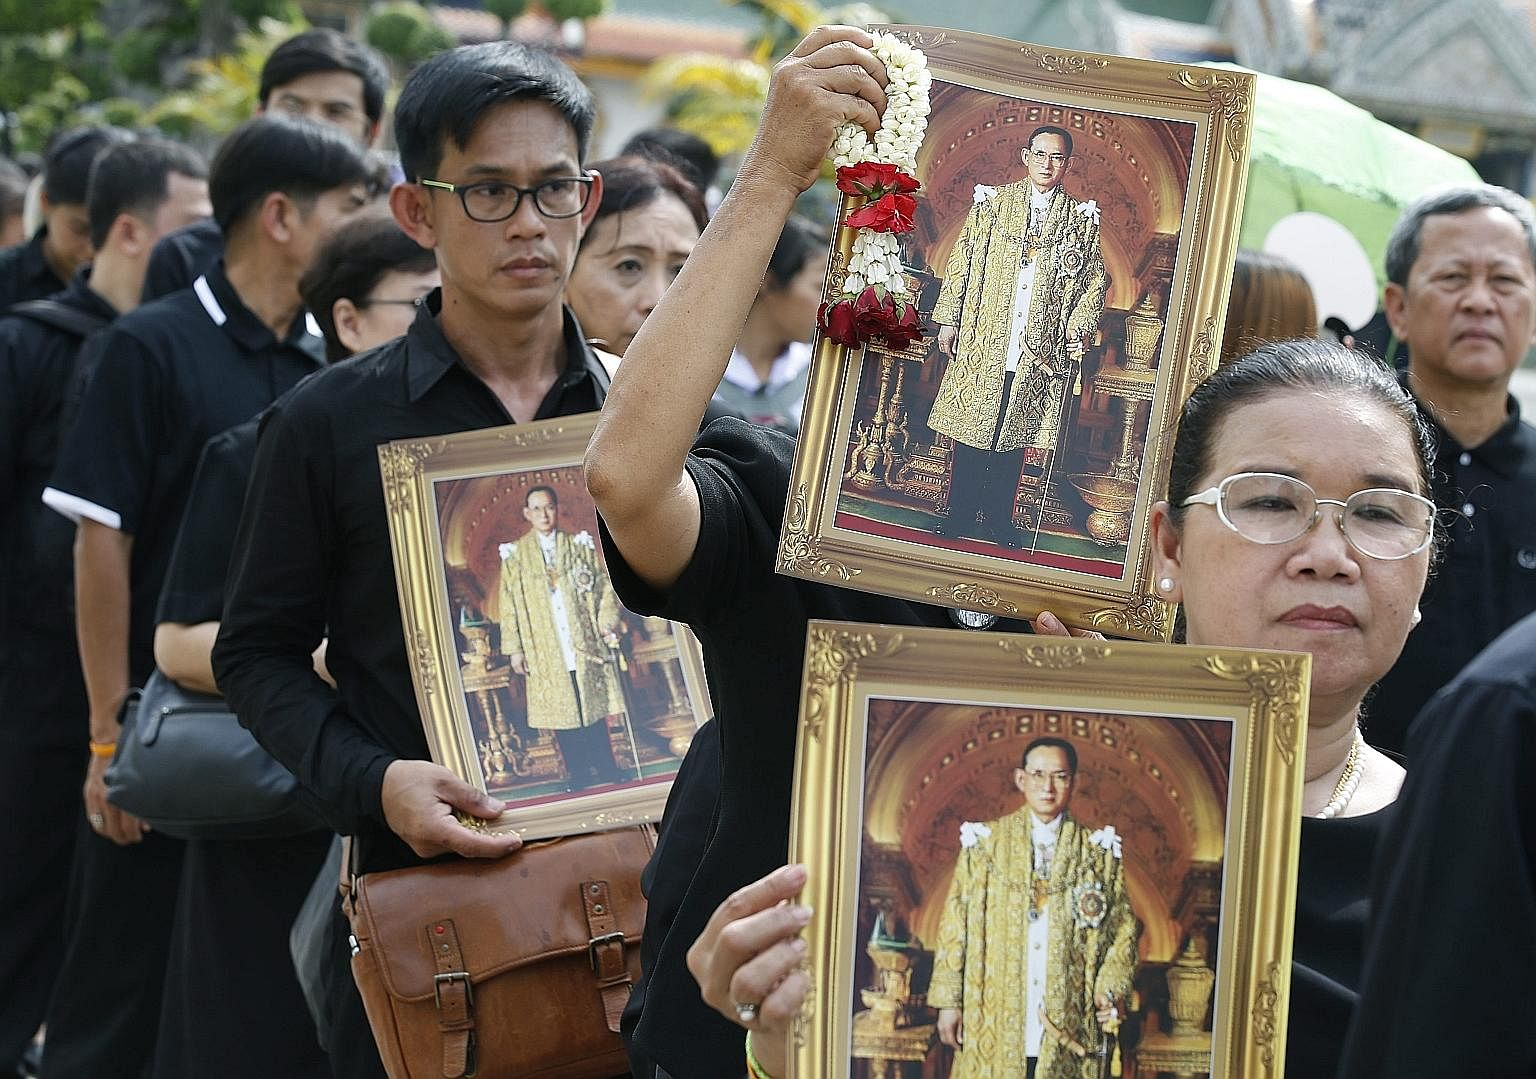 Thai mourners lining up to pay obeisance to the Royal Urn of the late King Bhumipol in Bangkok on Oct 29.